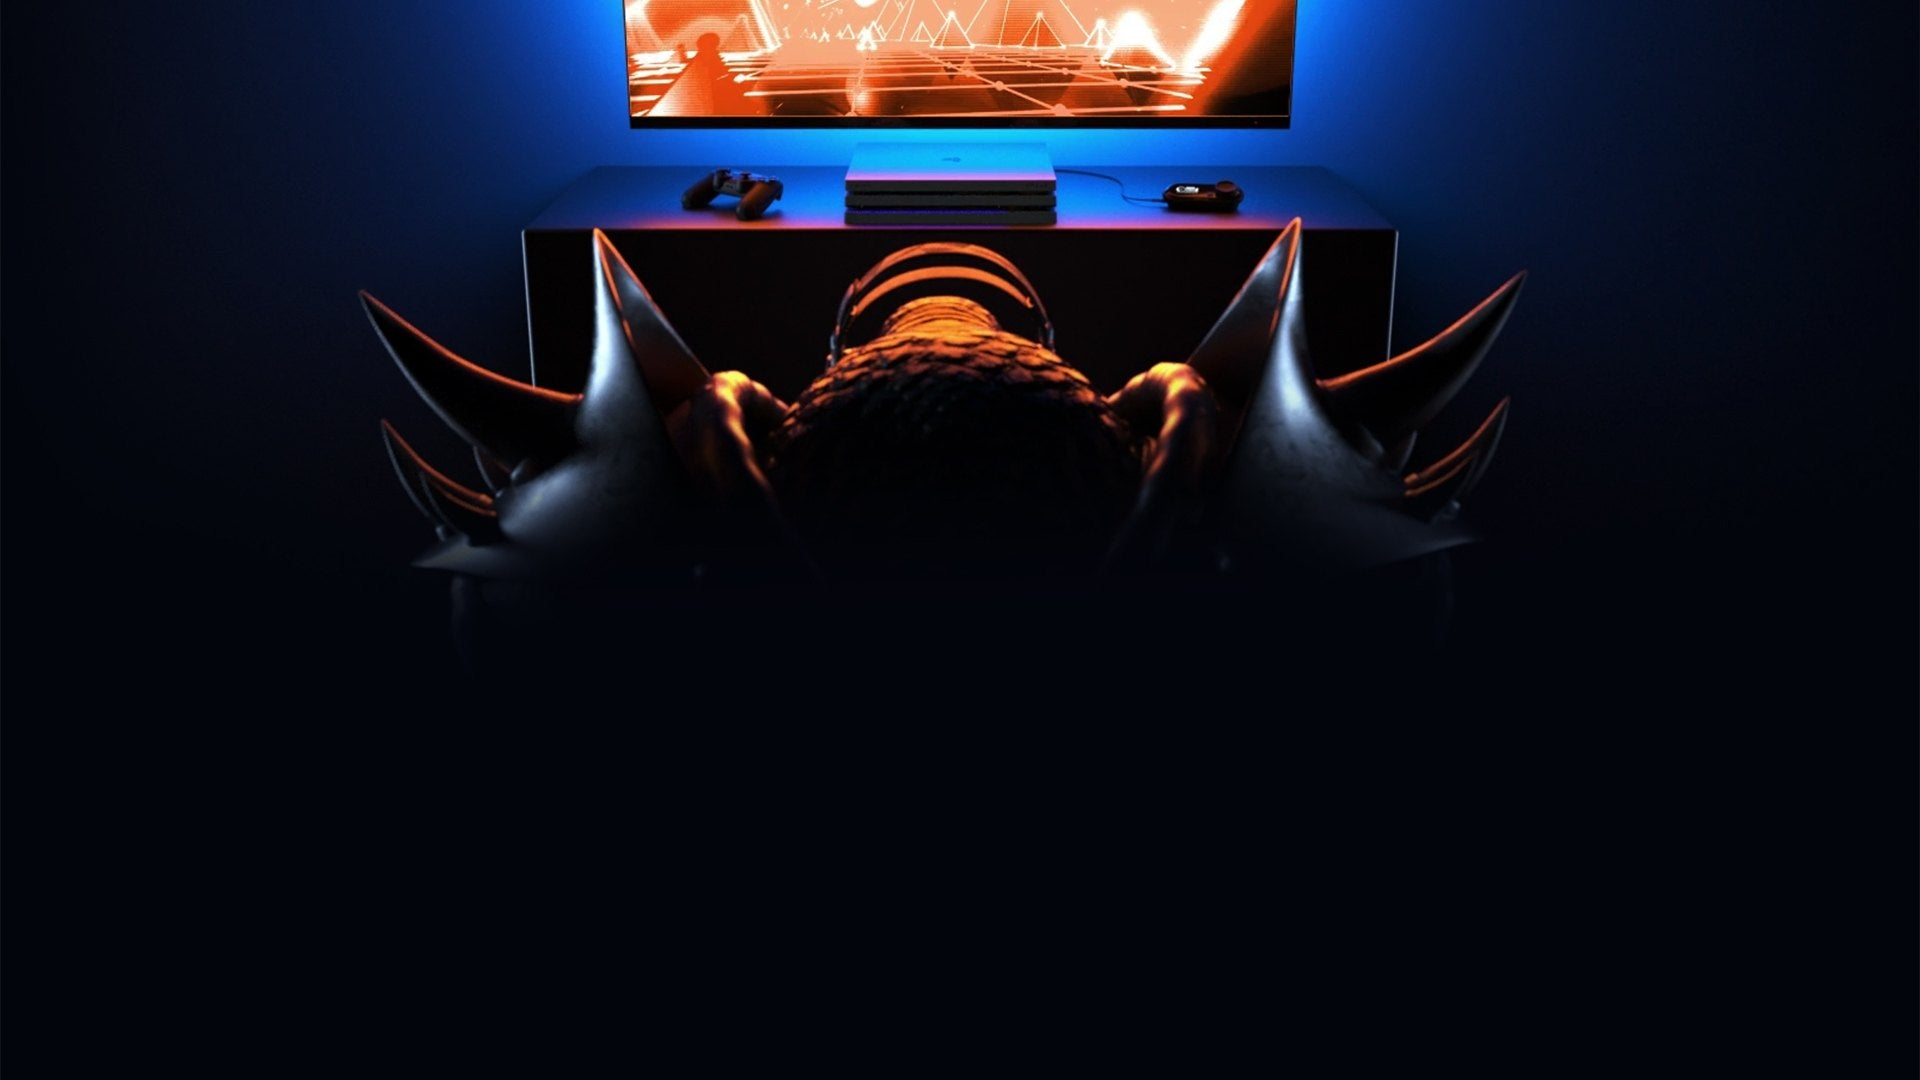 First in gaming to offer DTS Headphone:X v2.0 - The next generation of DTS' renowned surround sound, Headphone:X v2.0 immerses you in the action by delivering incredibly accurate positional cues without sounding like you're in a tunnel. Lose yourself in the game as the audio comes to life all around you.